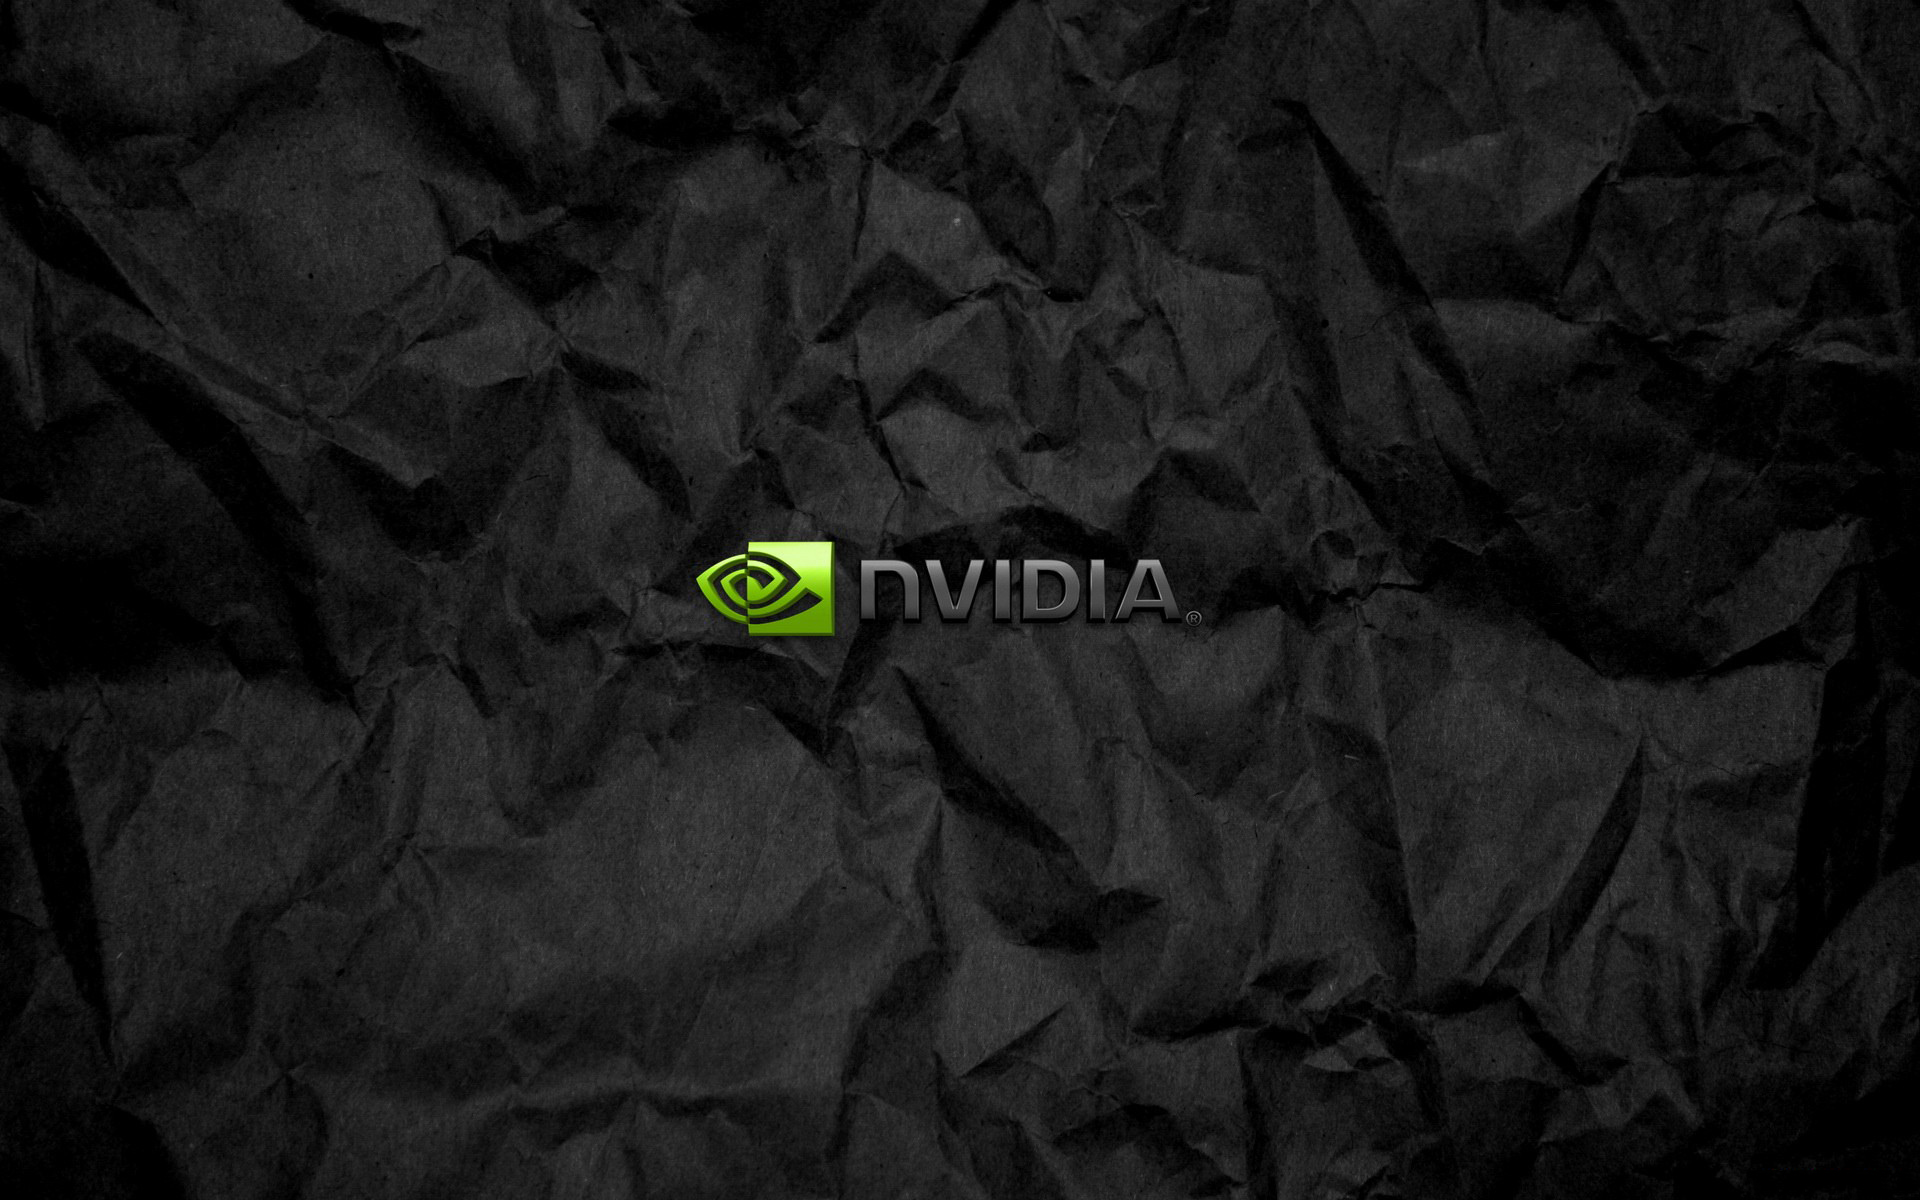 Nvidia Wallpaper: Nvidia Backgrounds, Pictures, Images